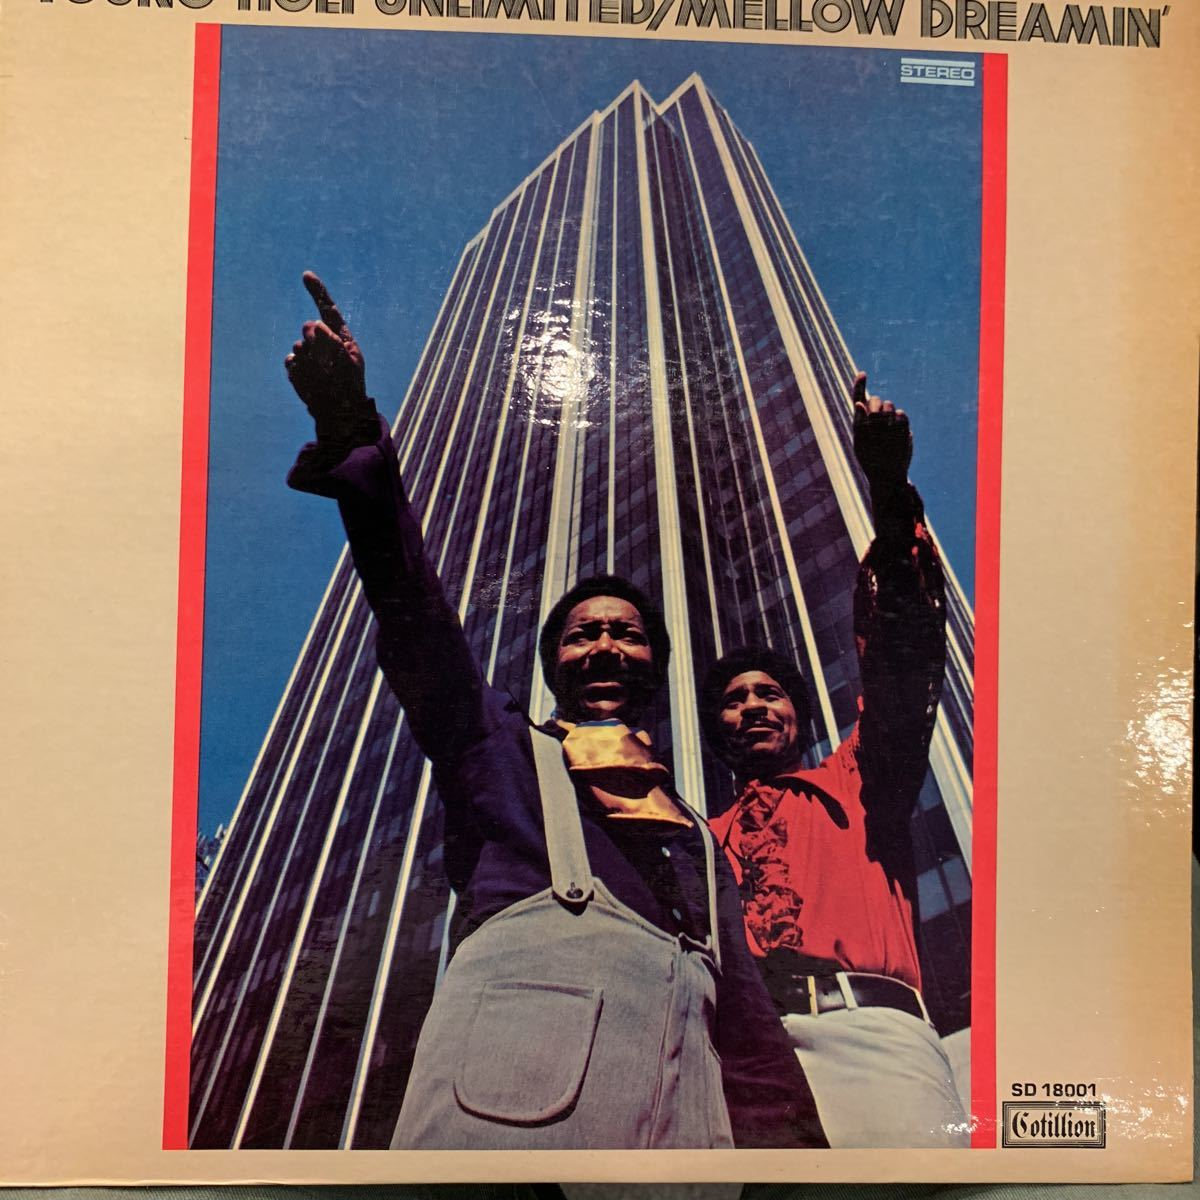 YOUNG-HOLT UNLIMITED / MELLOW DREAMIN' サンプリング ネタ DITC D.I.T.C MURO 中古レコード_画像1